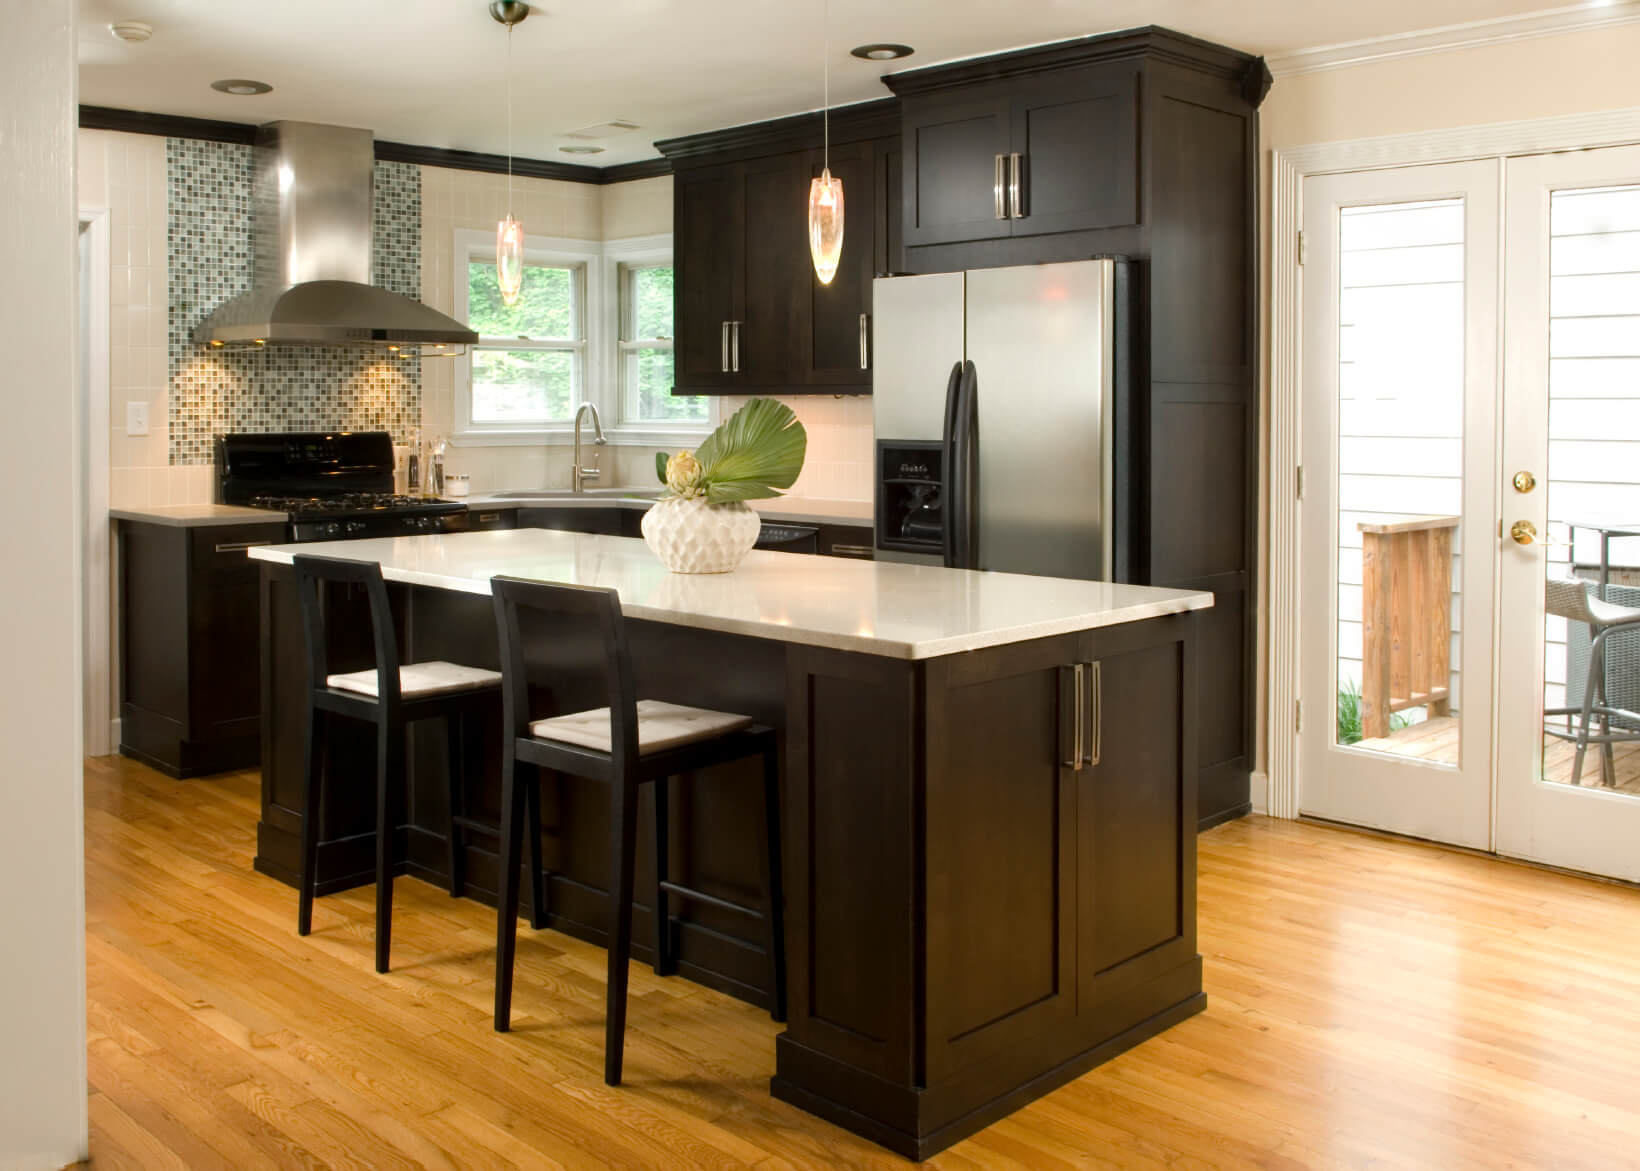 Black Kitchen Walls White Cabinets 52 dark kitchens with dark wood and black kitchen cabinets